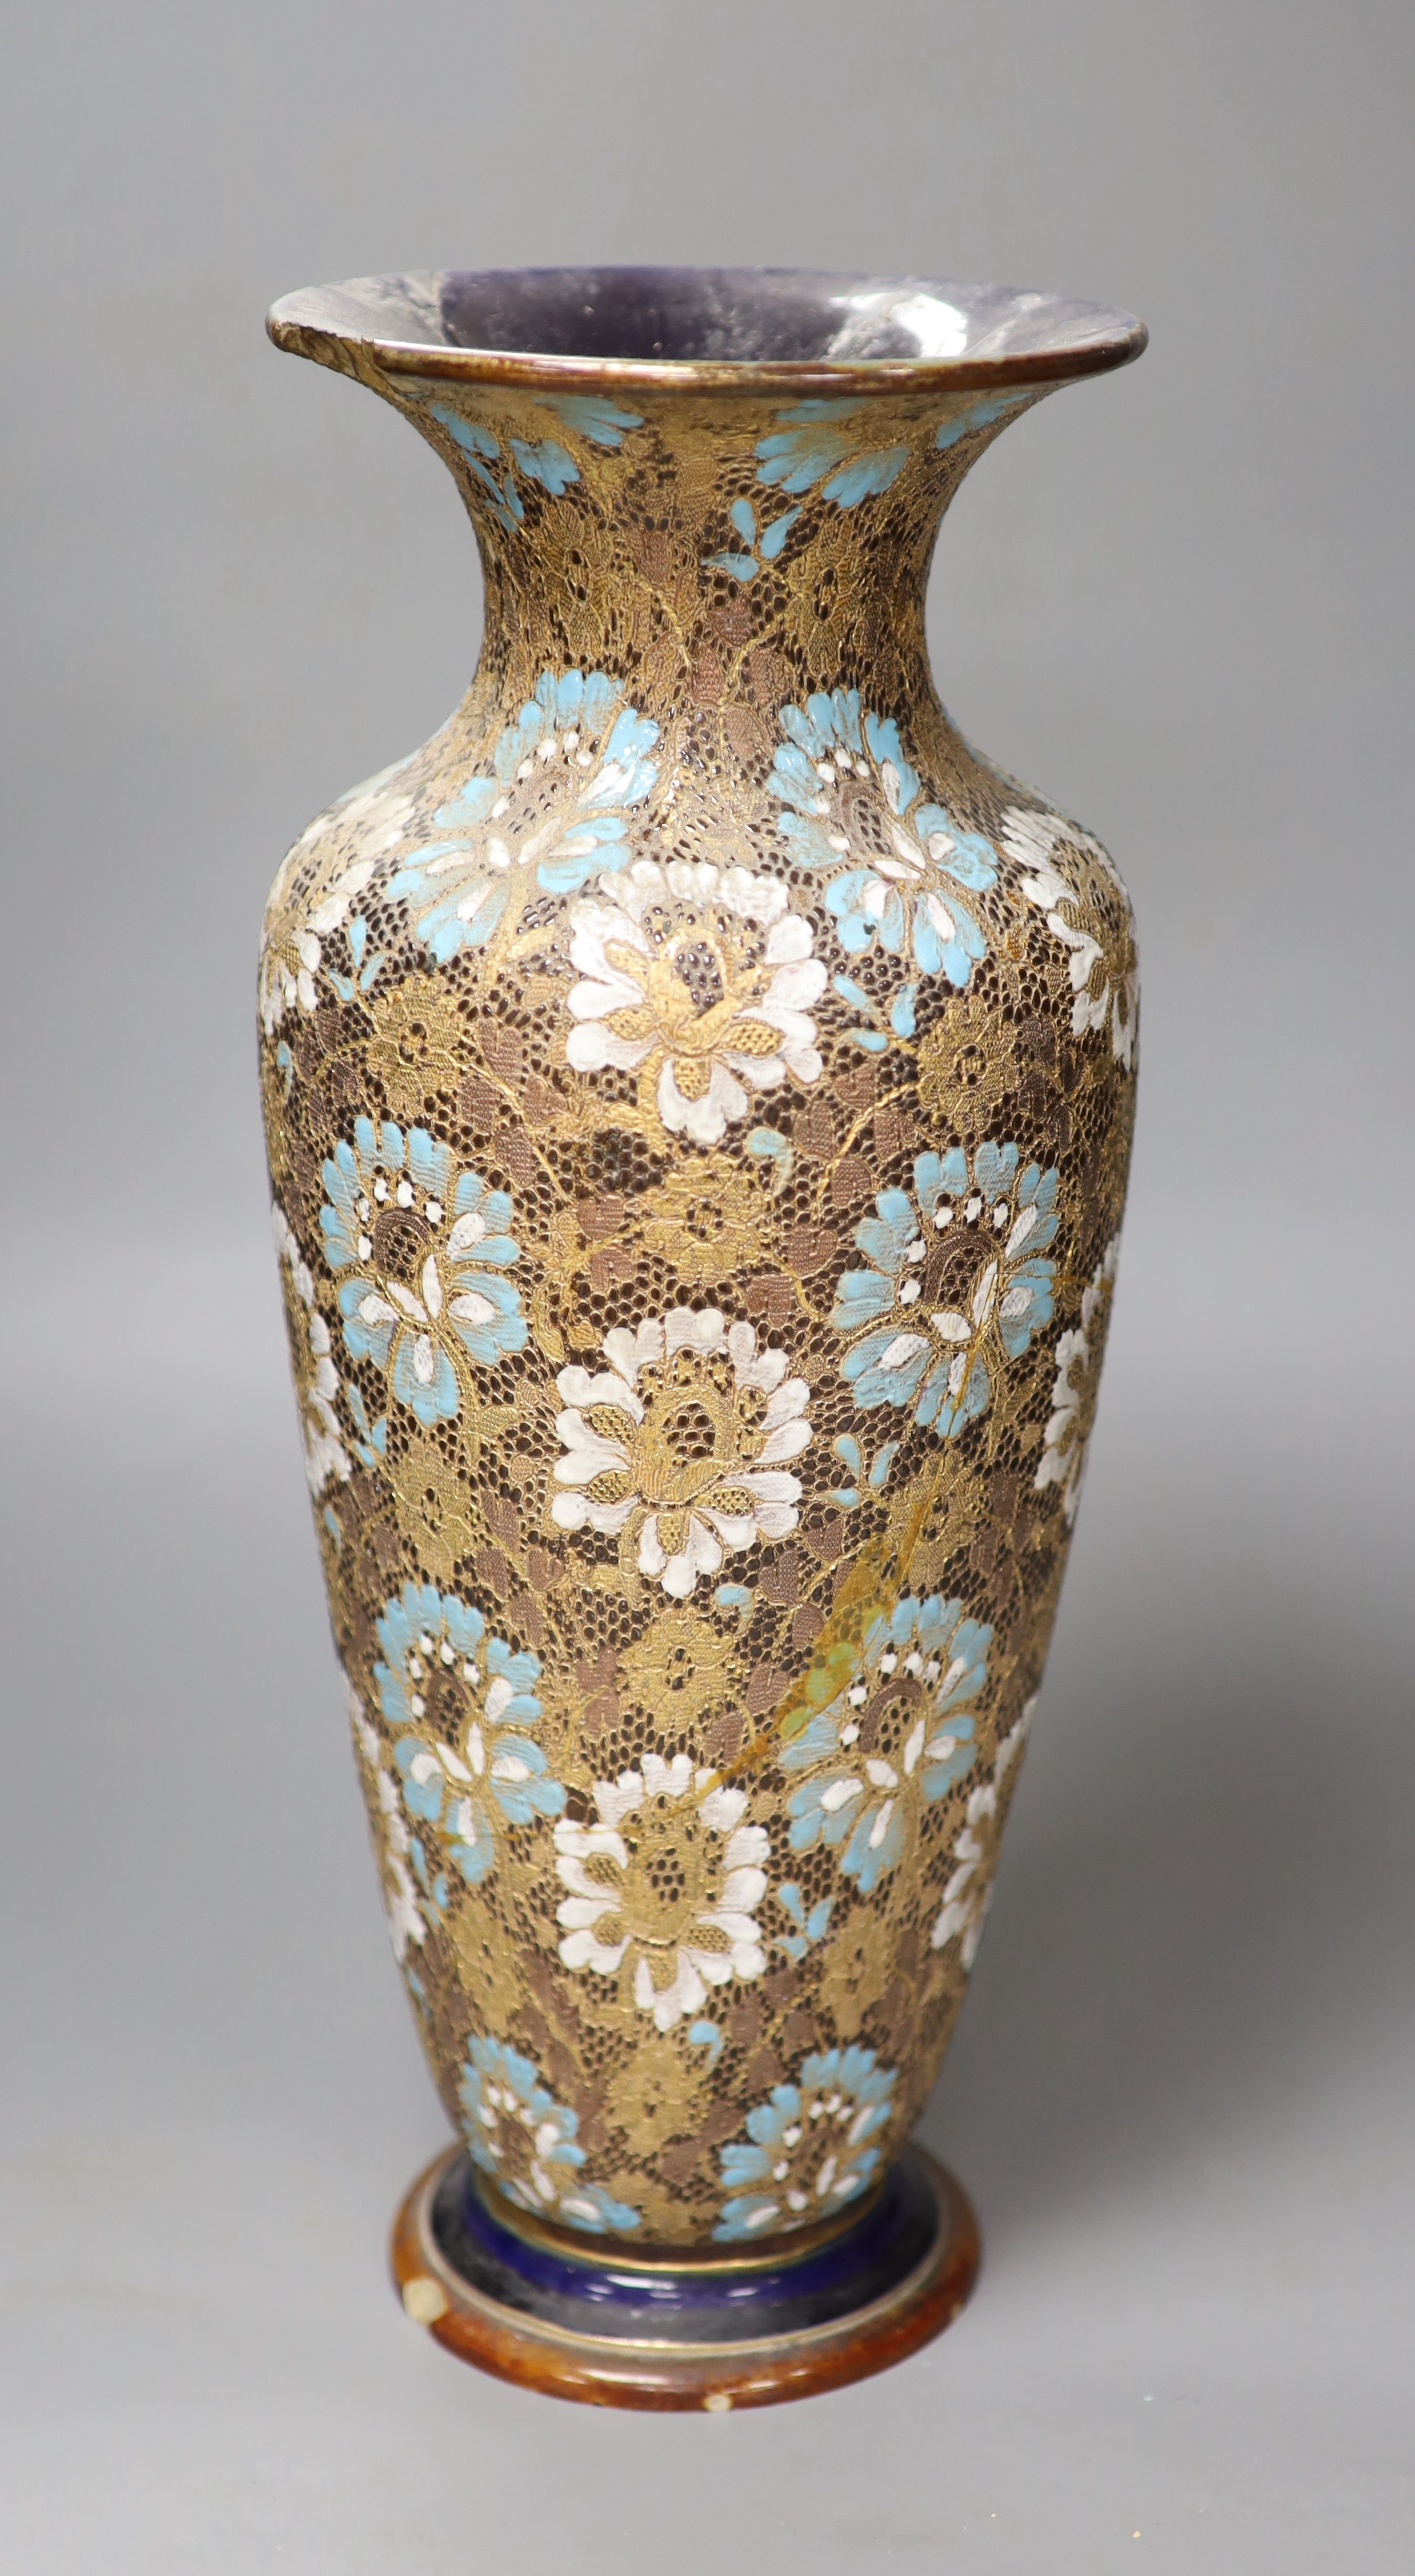 A large Doulton Slater's Patent vase, height 40cm (a.f.)